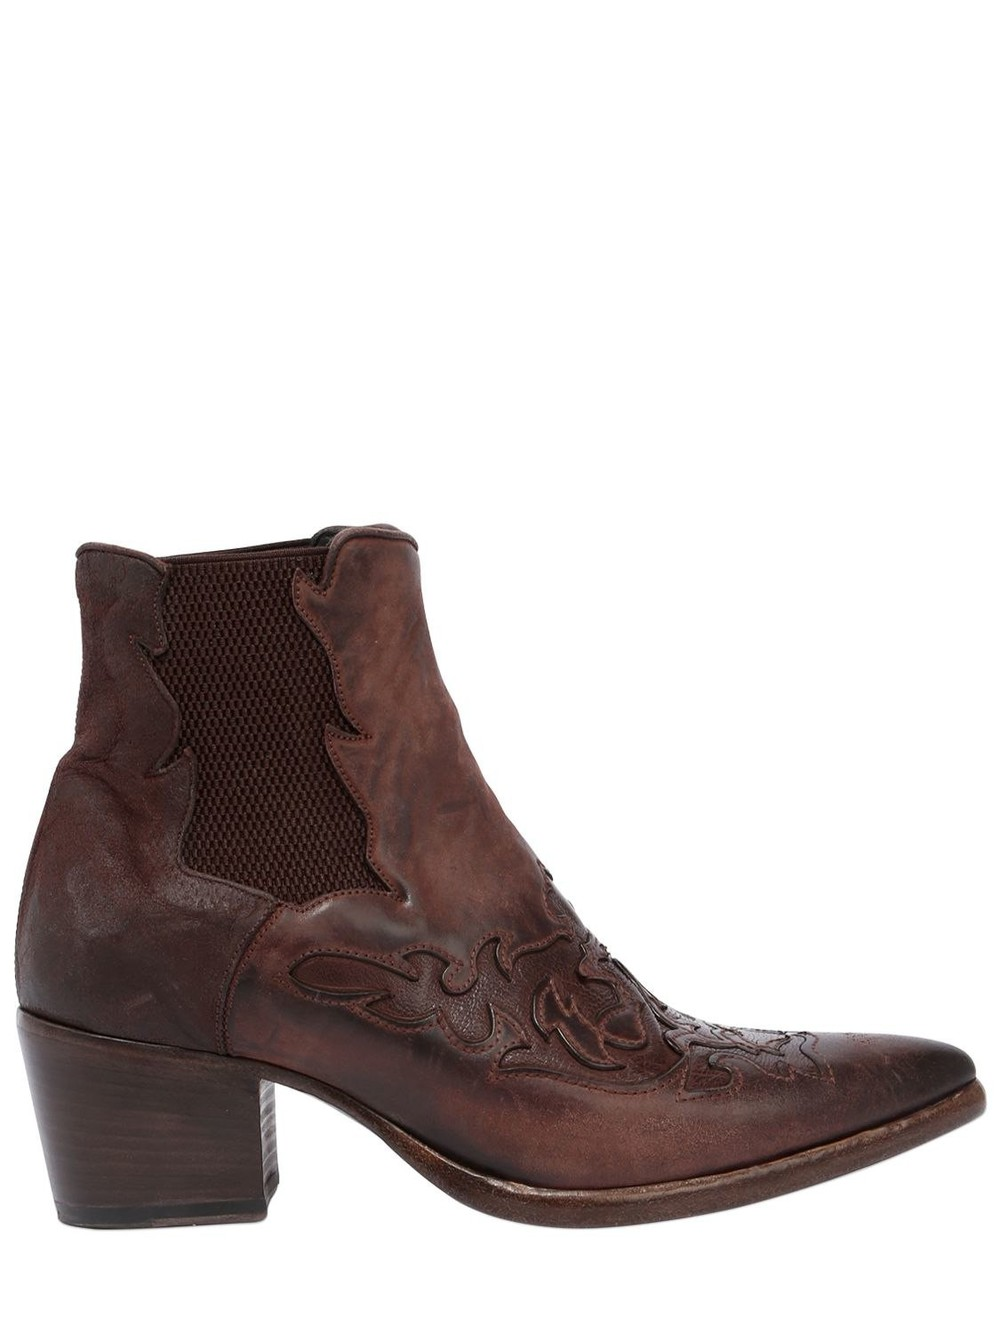 ALBERTO FASCIANI 40mm Leather Cowboy Ankle Boots in brown